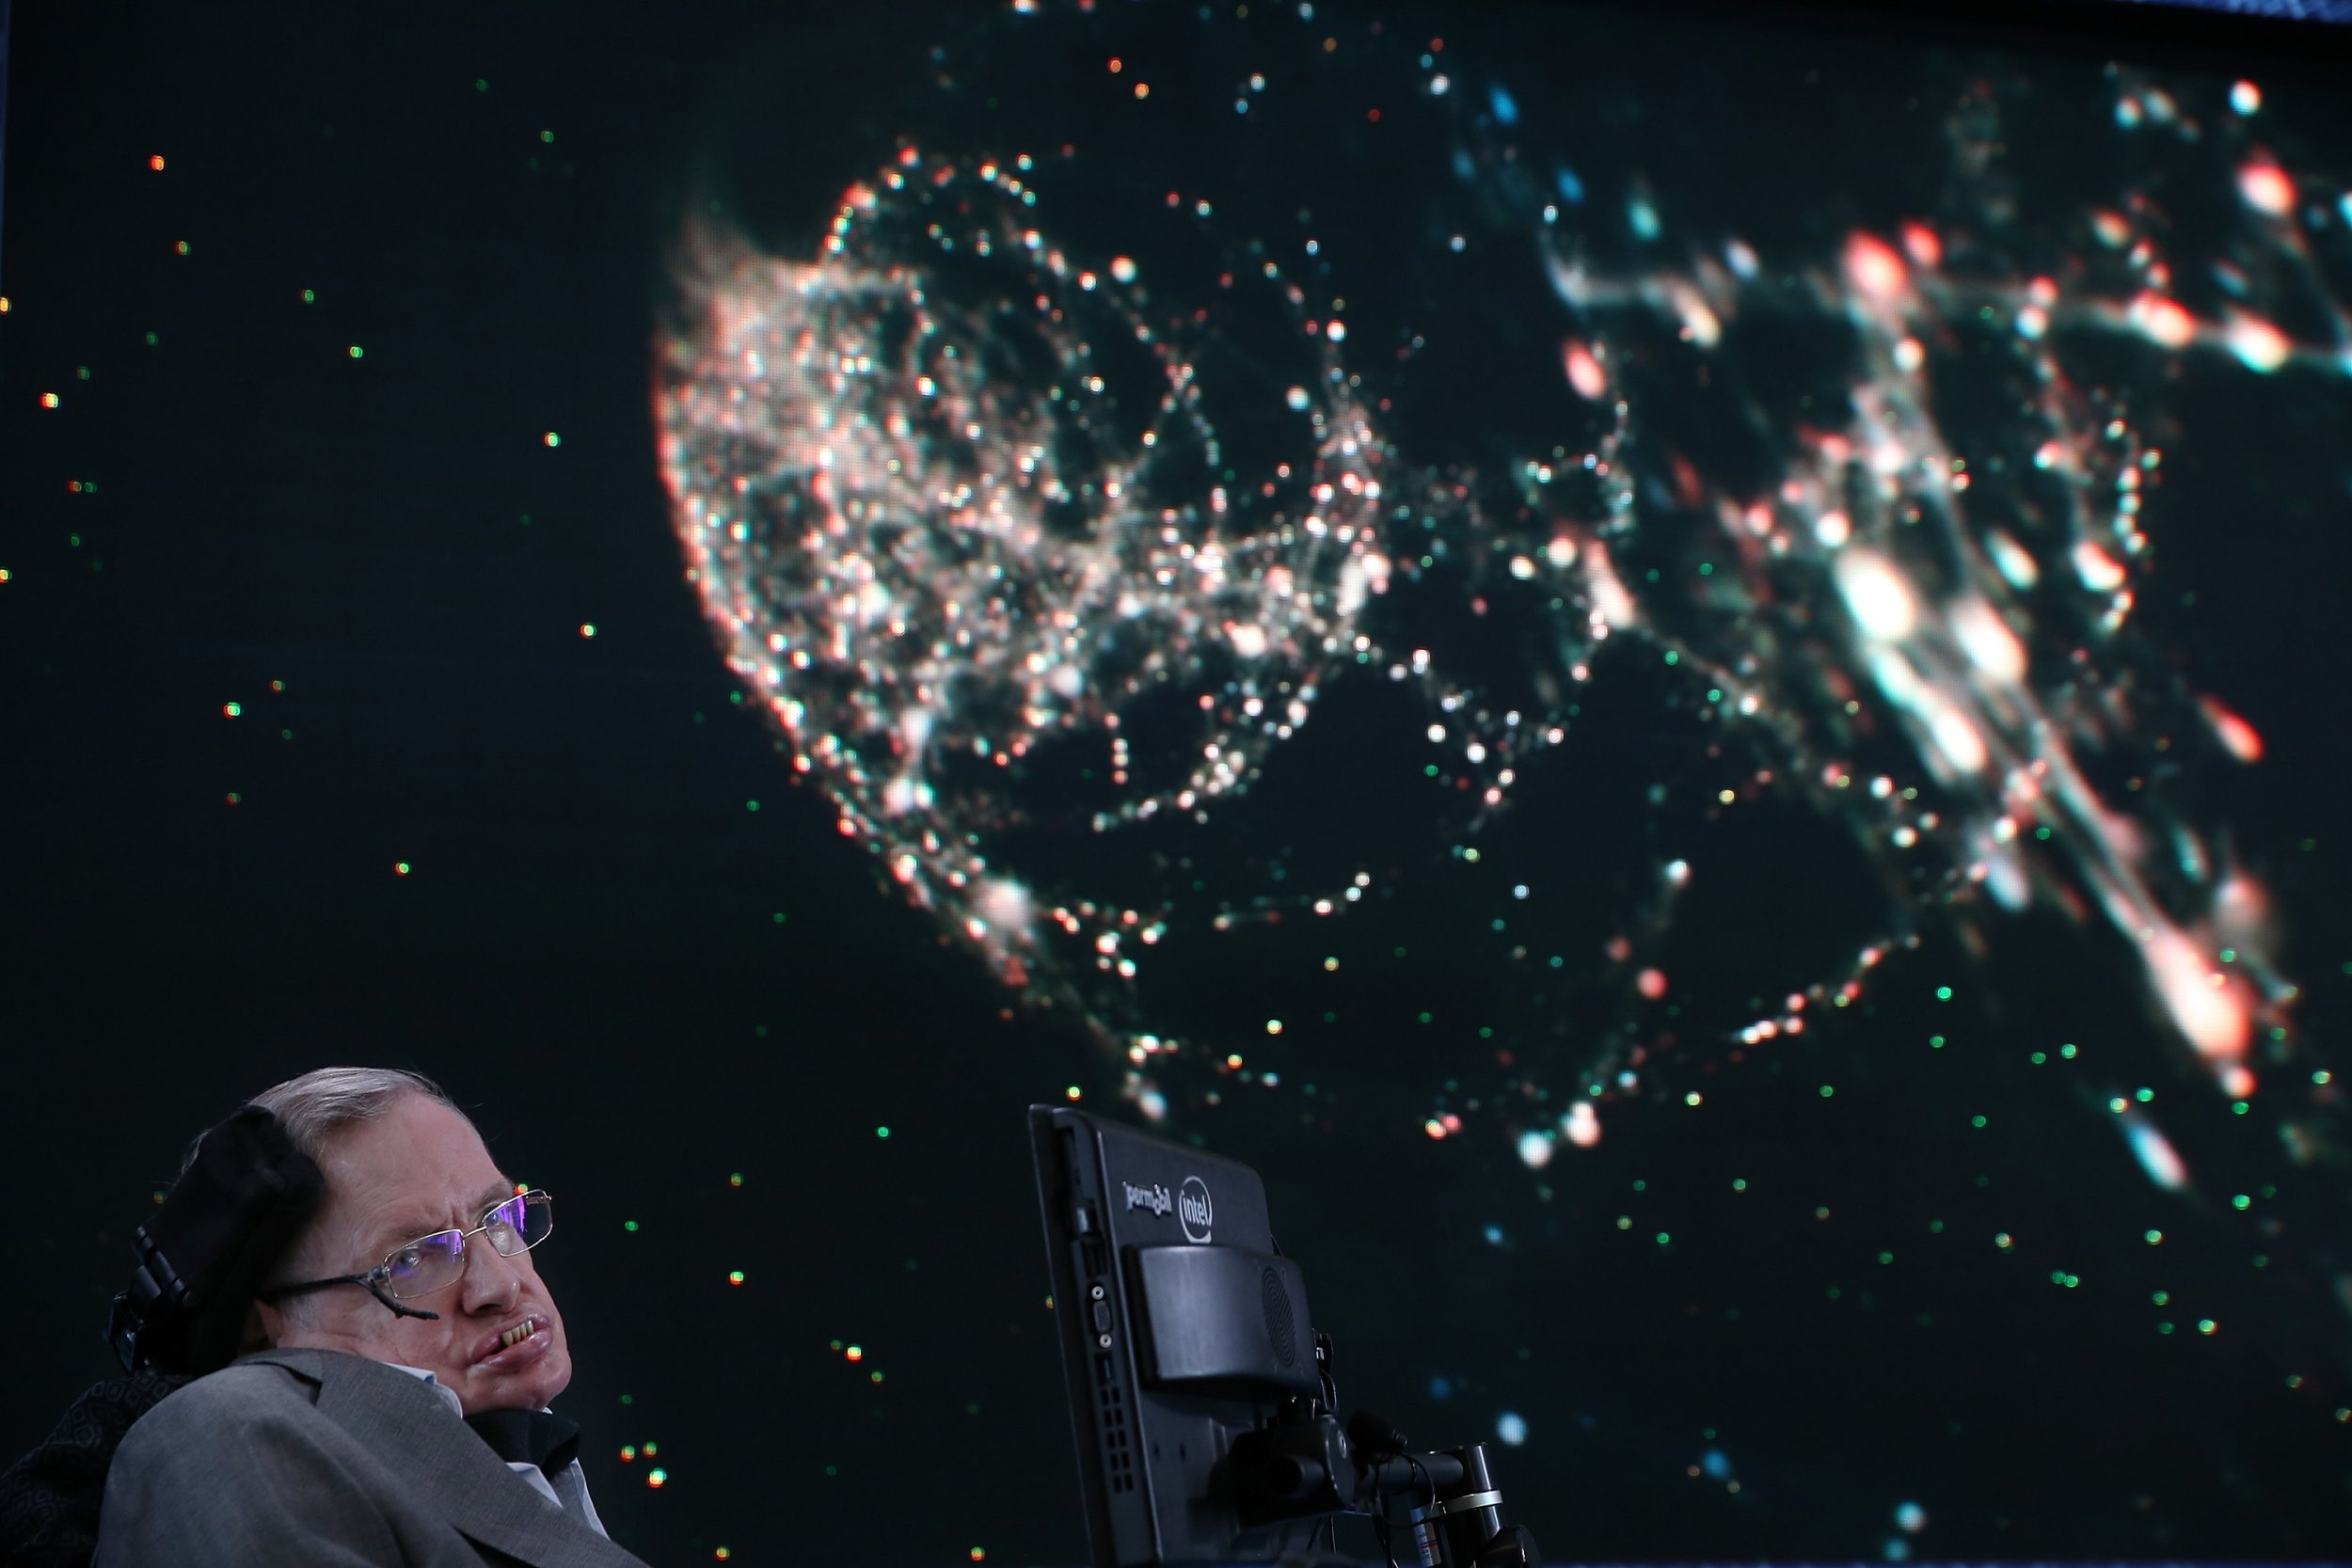 Stephen Hawking predicted the end of the world in new research submitted before he died